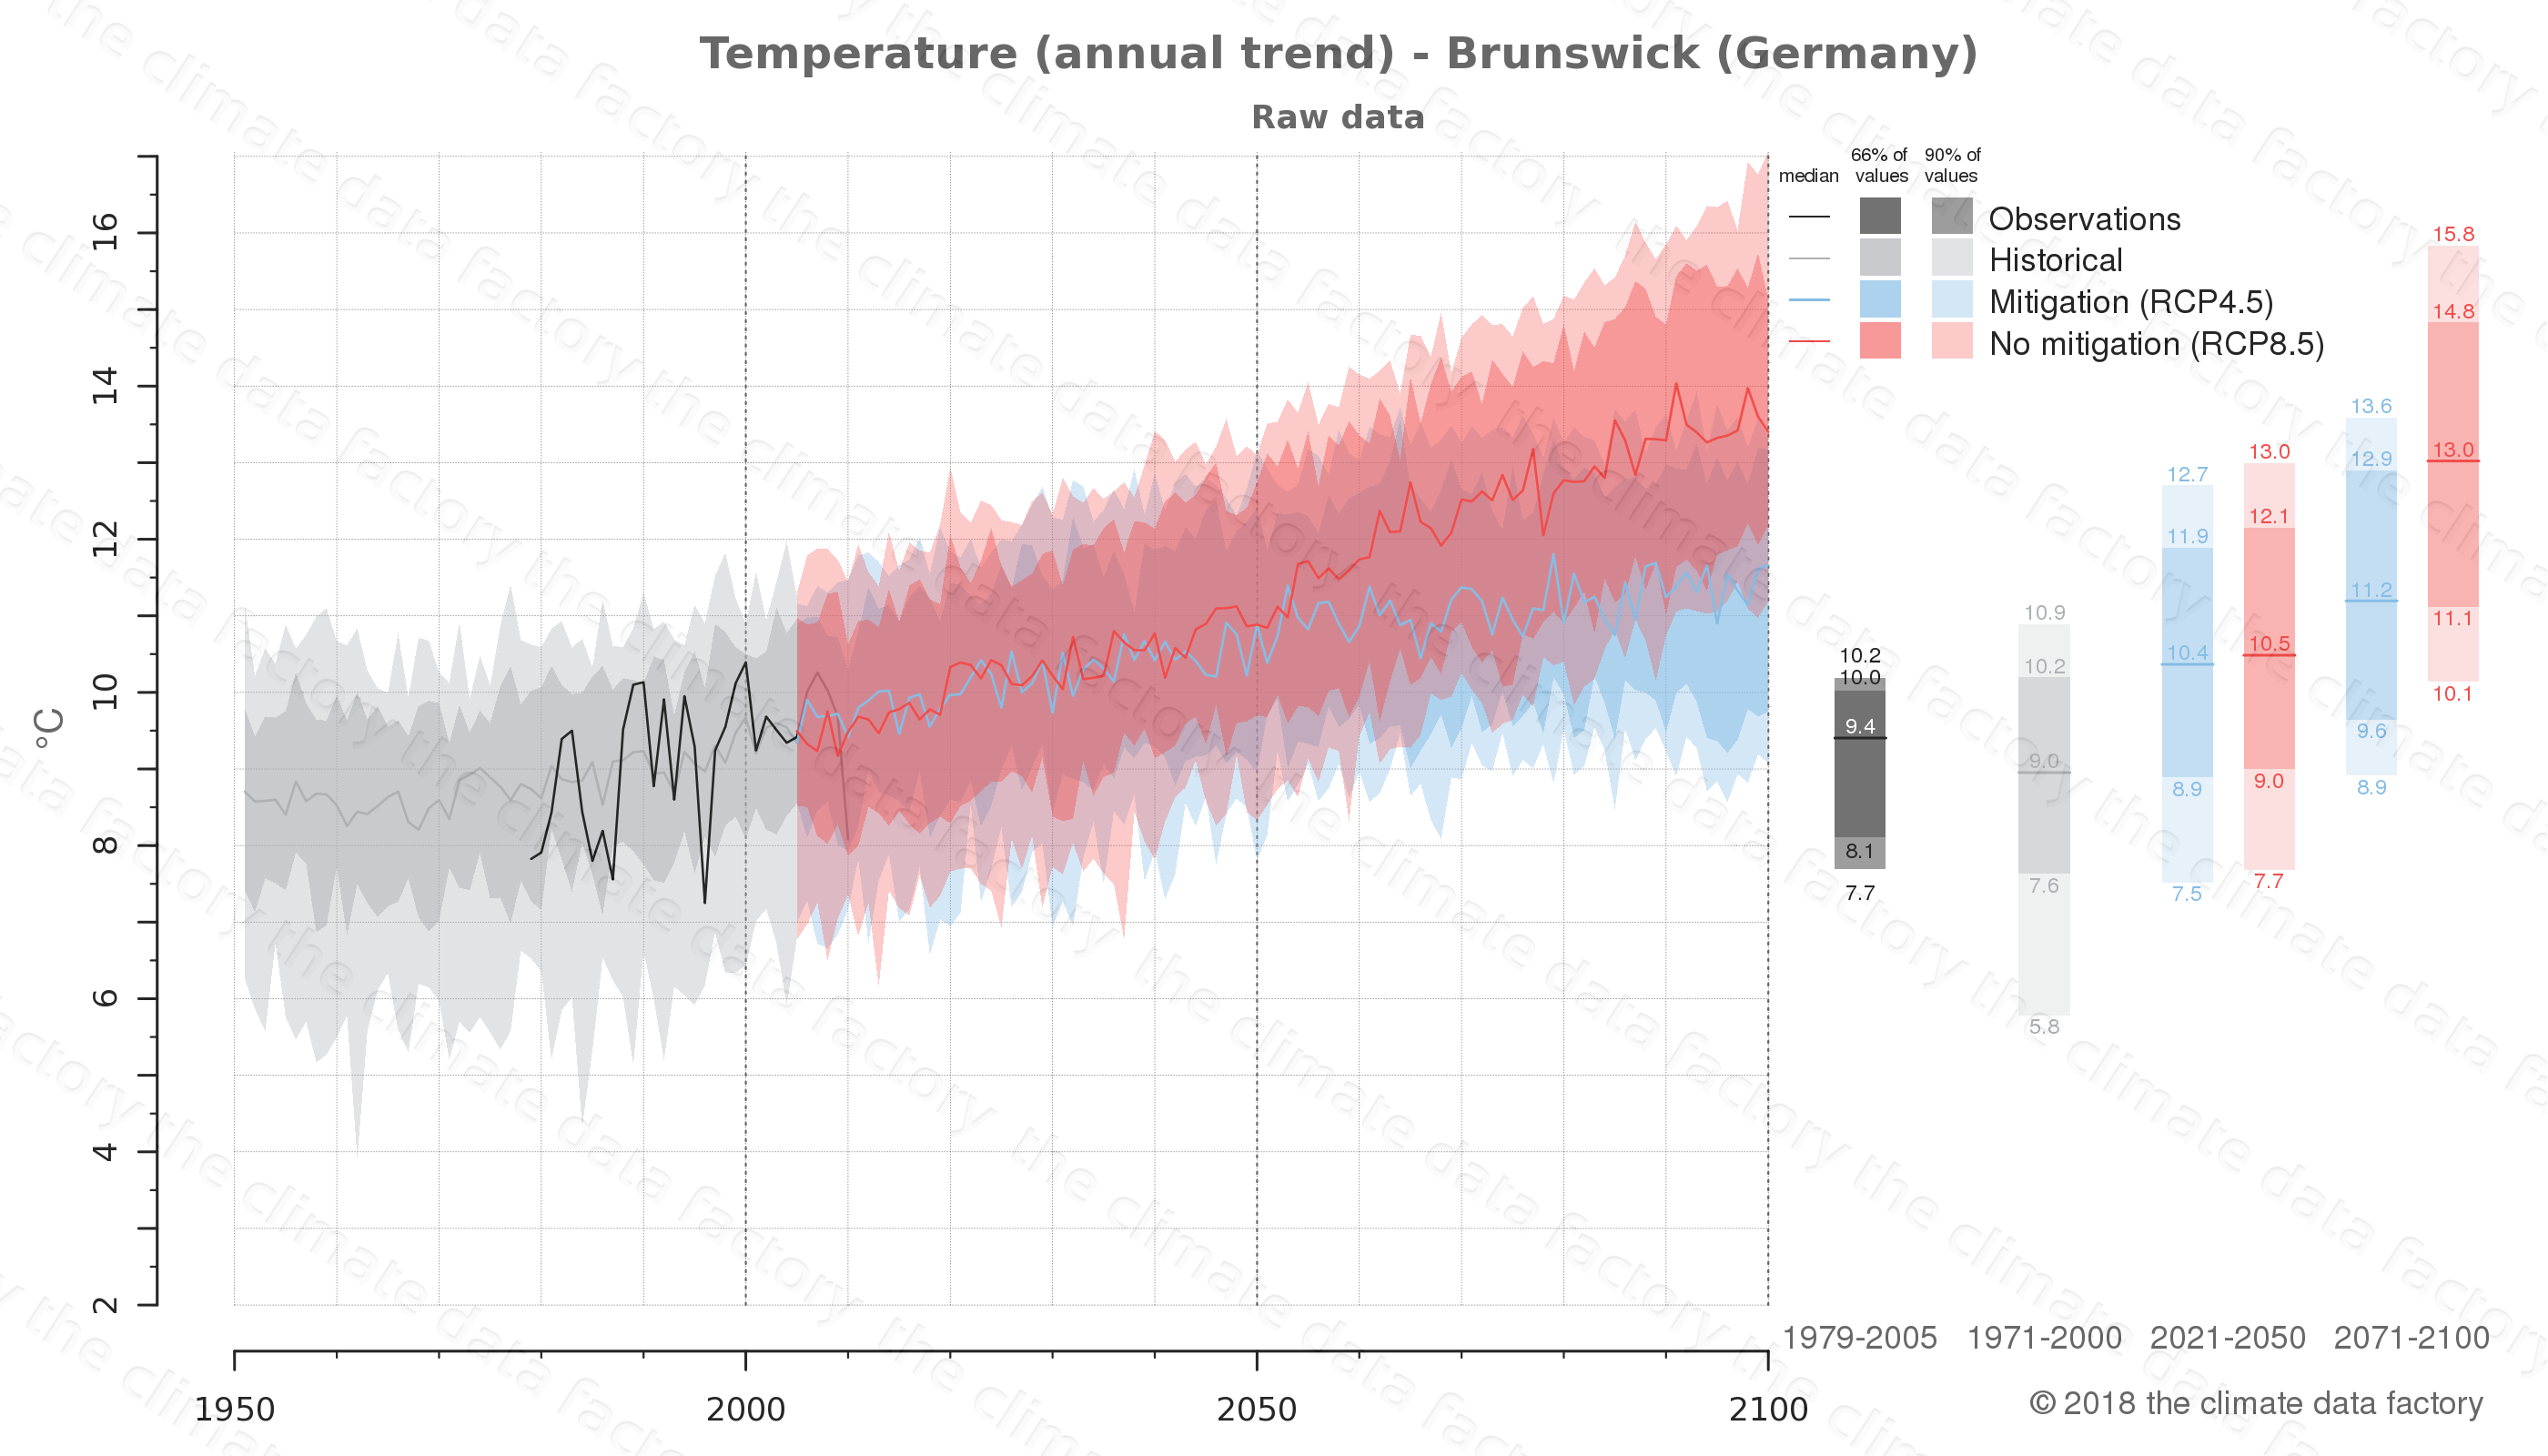 climate change data policy adaptation climate graph city data temperature brunswick germany